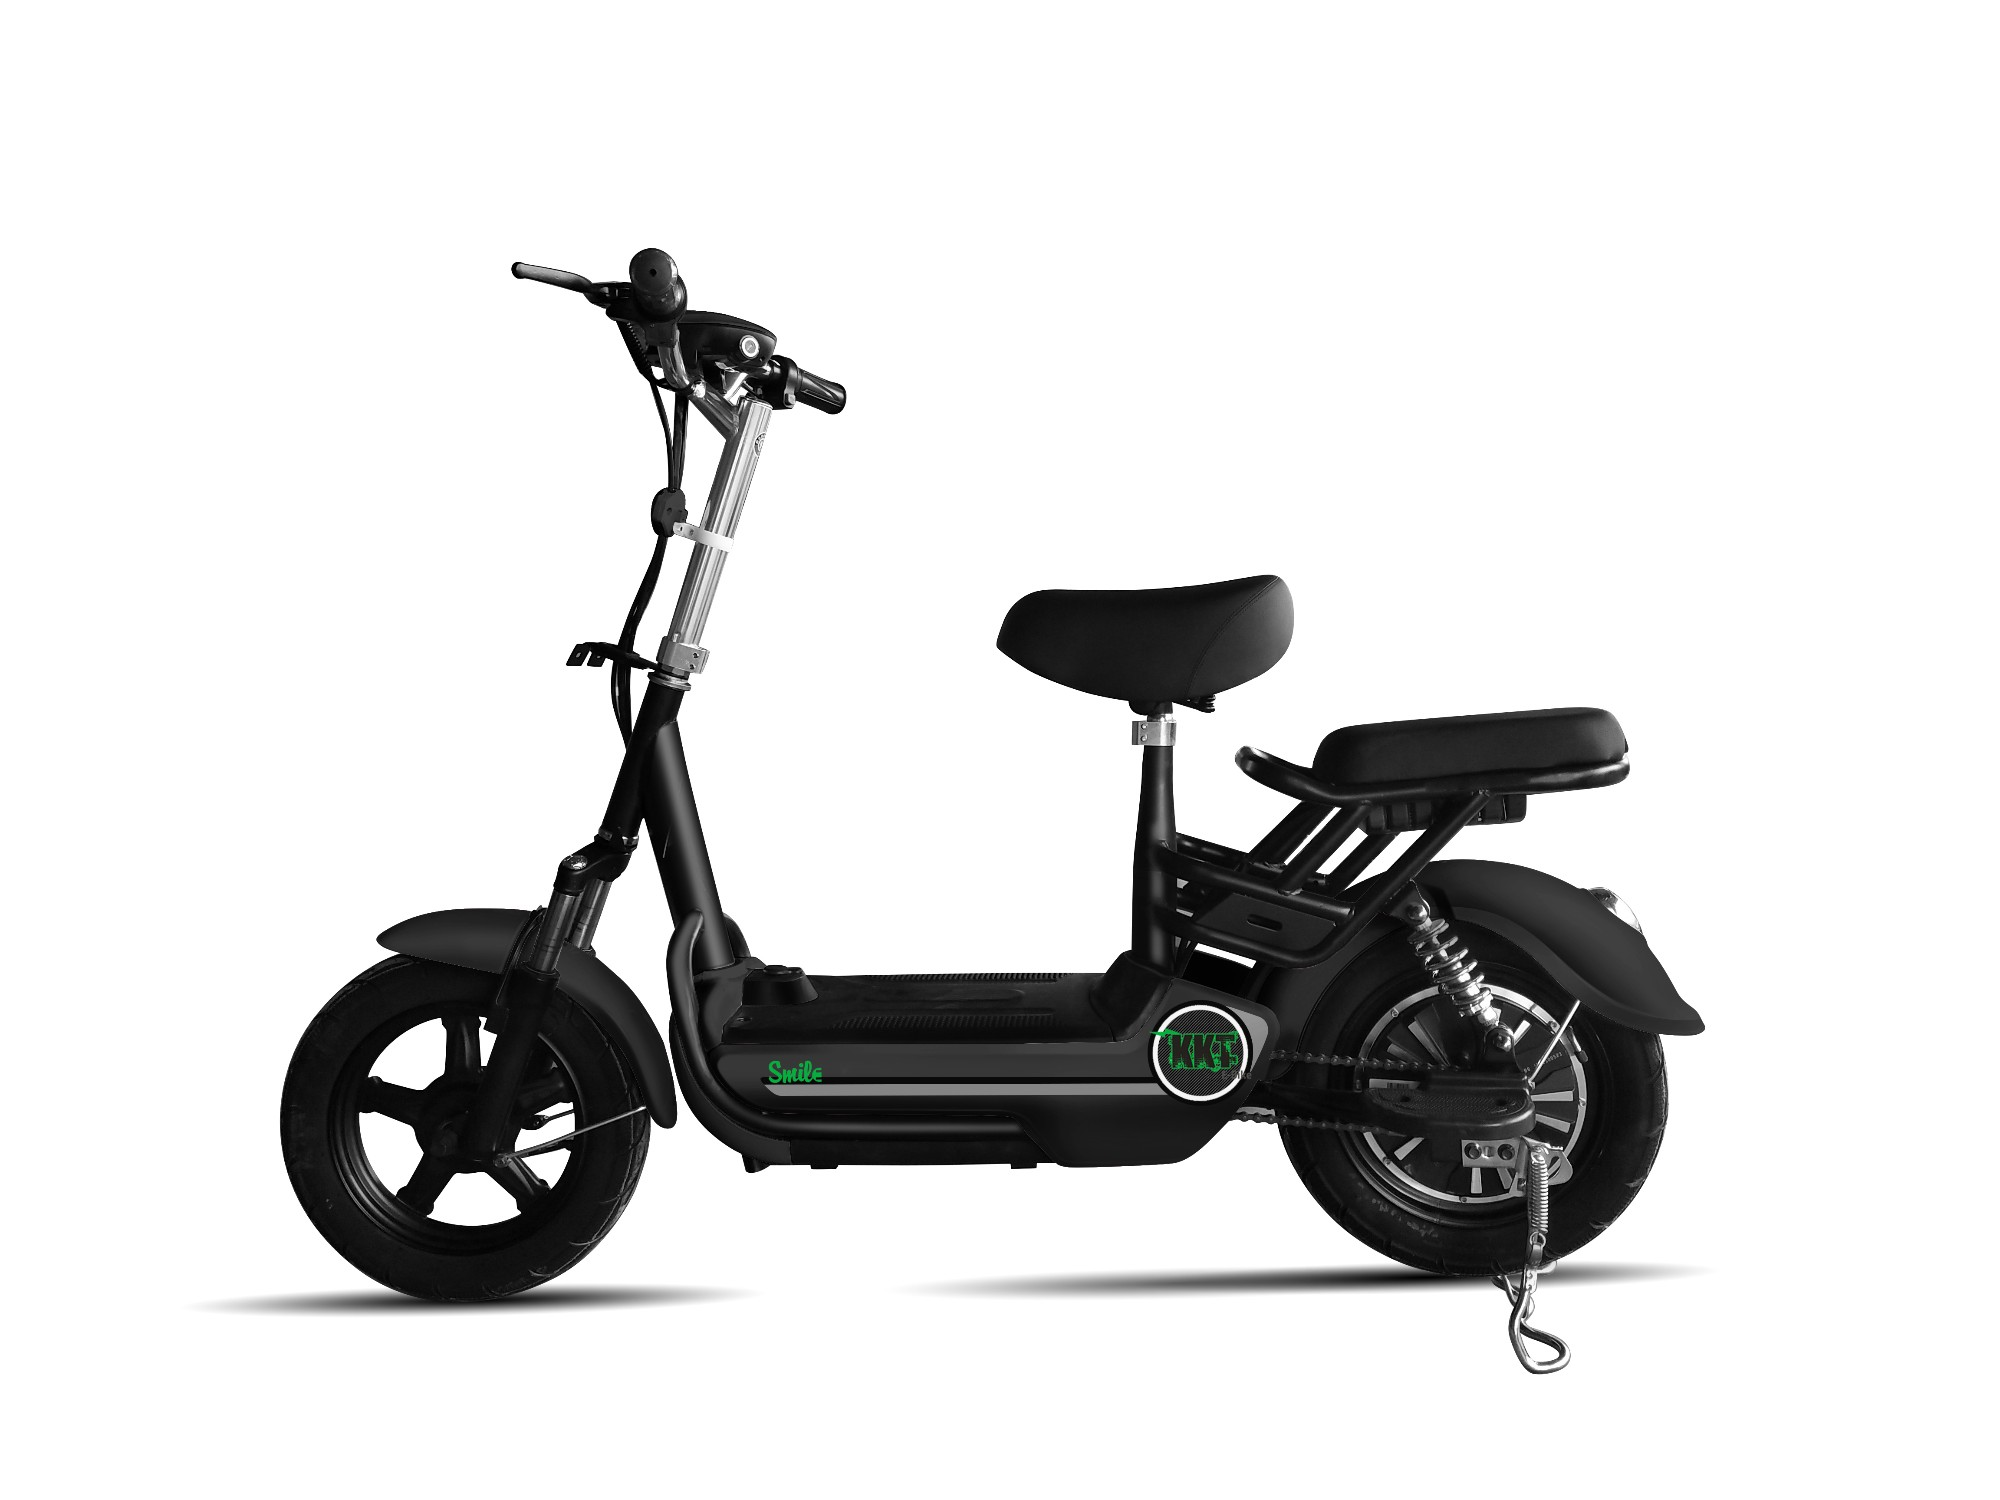 Supply Popular Classic Electric Cycle, Popular Classic Electric Cycle Factory Quotes, Popular Classic Electric Cycle Producers